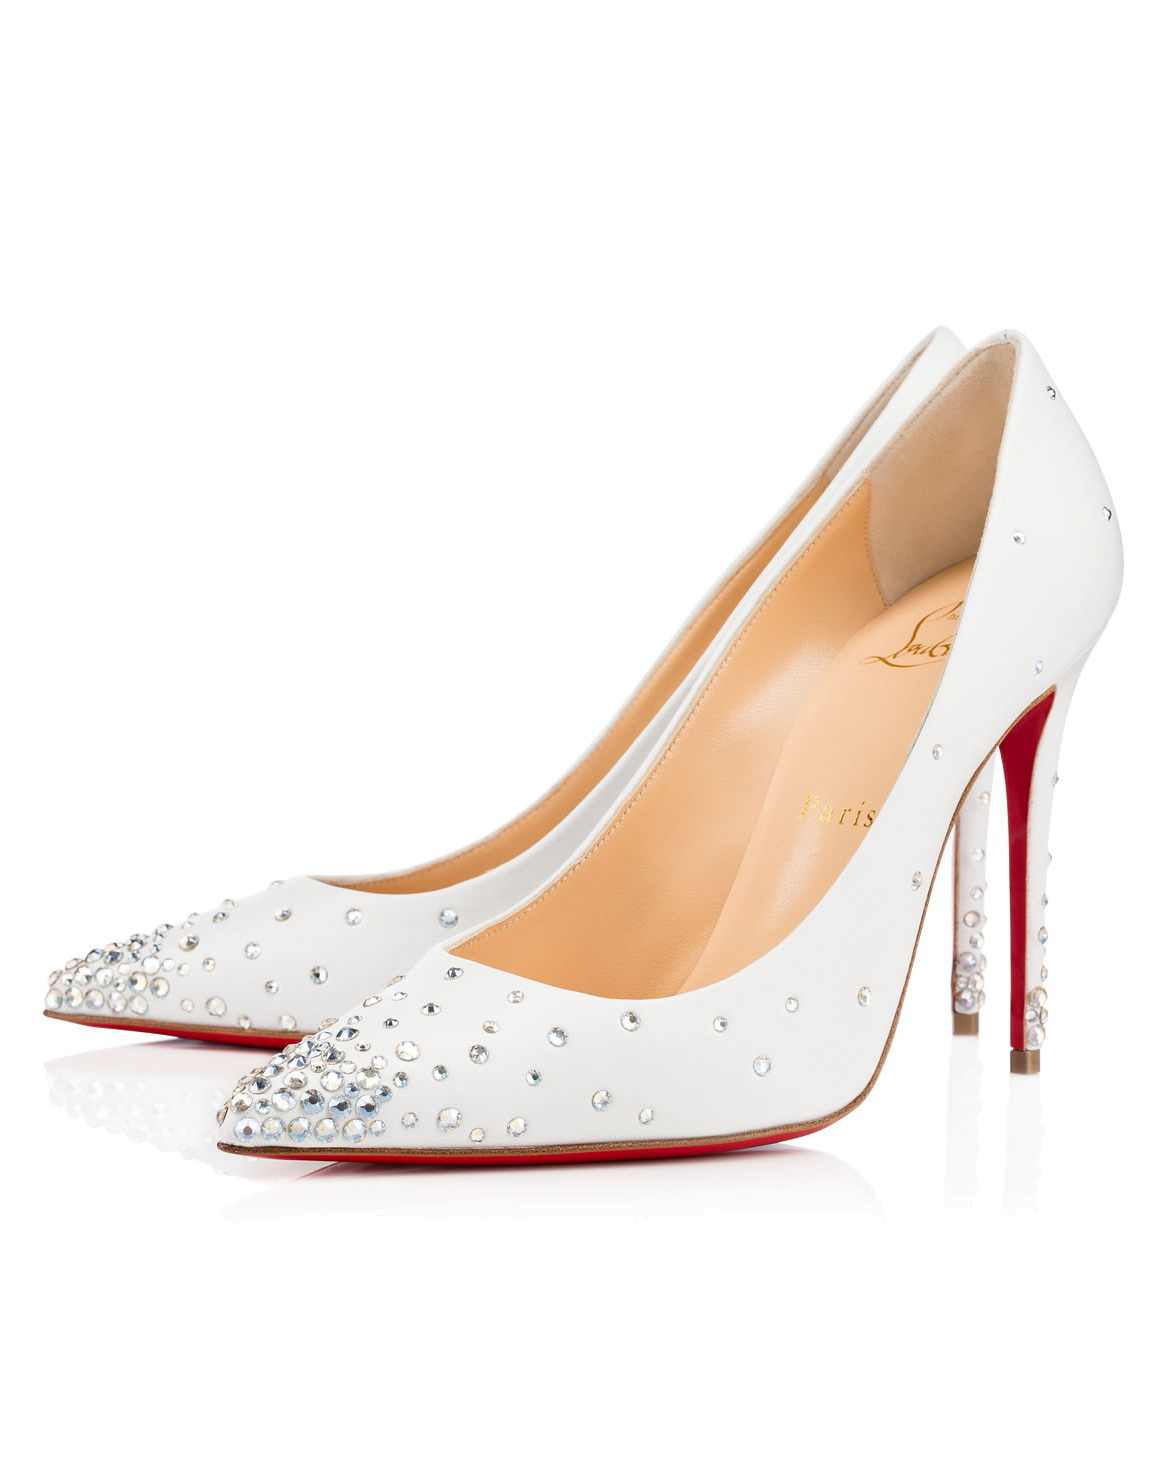 Leather & Crystal Wedding Shoes